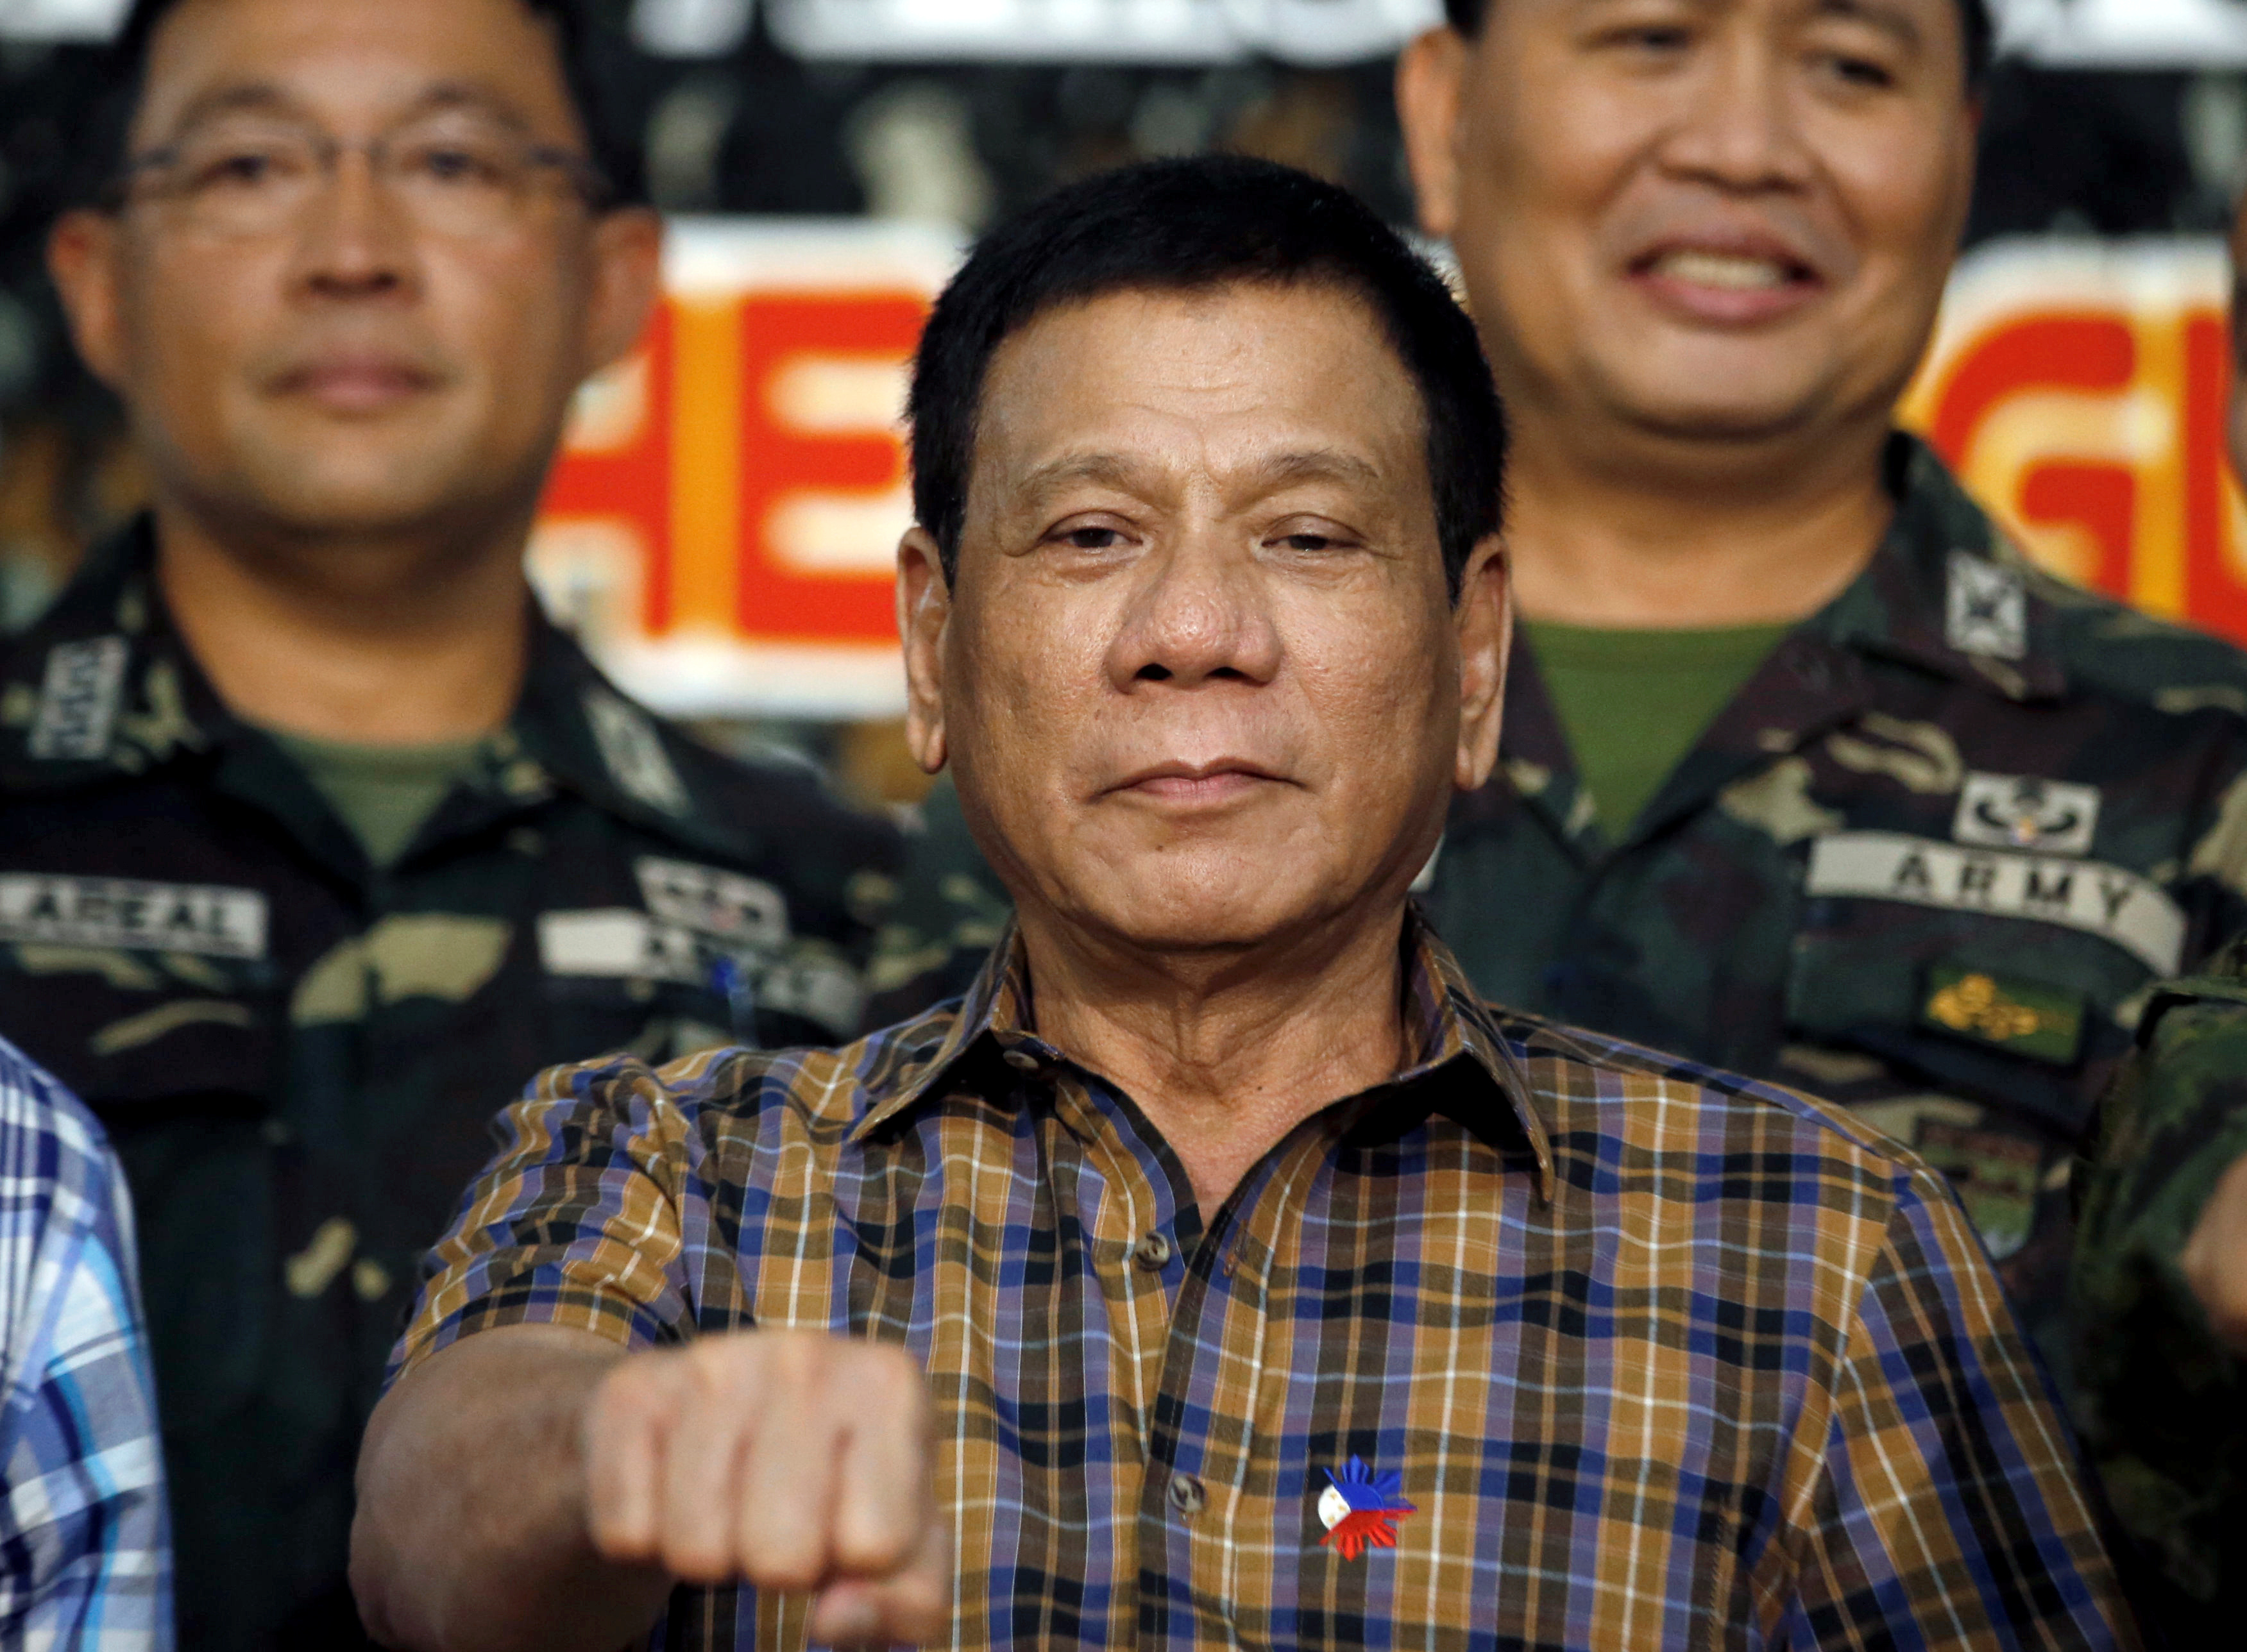 Philippine President Rodrigo Duterte gestures at soldiers during a visit at Capinpin military camp in Tanay, in the Philippine province of Rizal, on Aug. 24, 2016